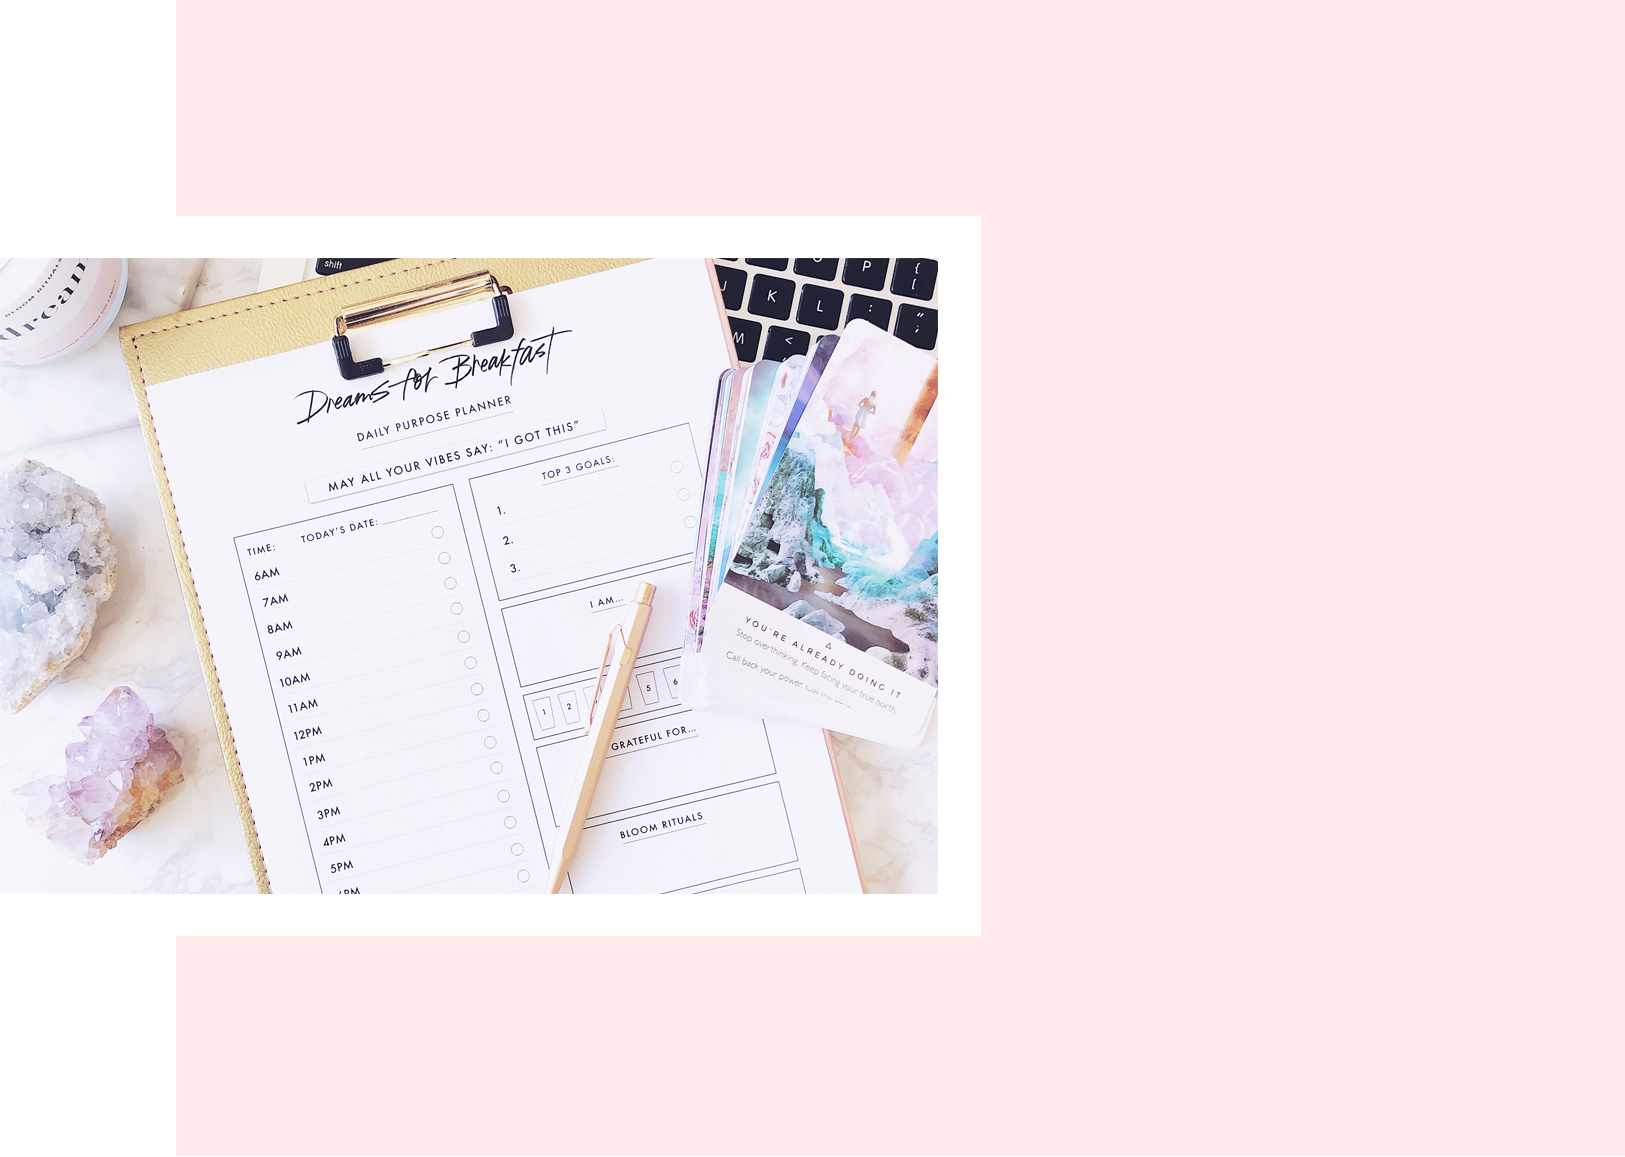 Ready to rock your biggest goals? - The Dreams for Breakfast Daily Purpose Planner has been designed for you to plan your day with intention; rock your biggest goals, and carve out space for nourishing your mind and soul, so you can align your mindset with the future direction of your life.